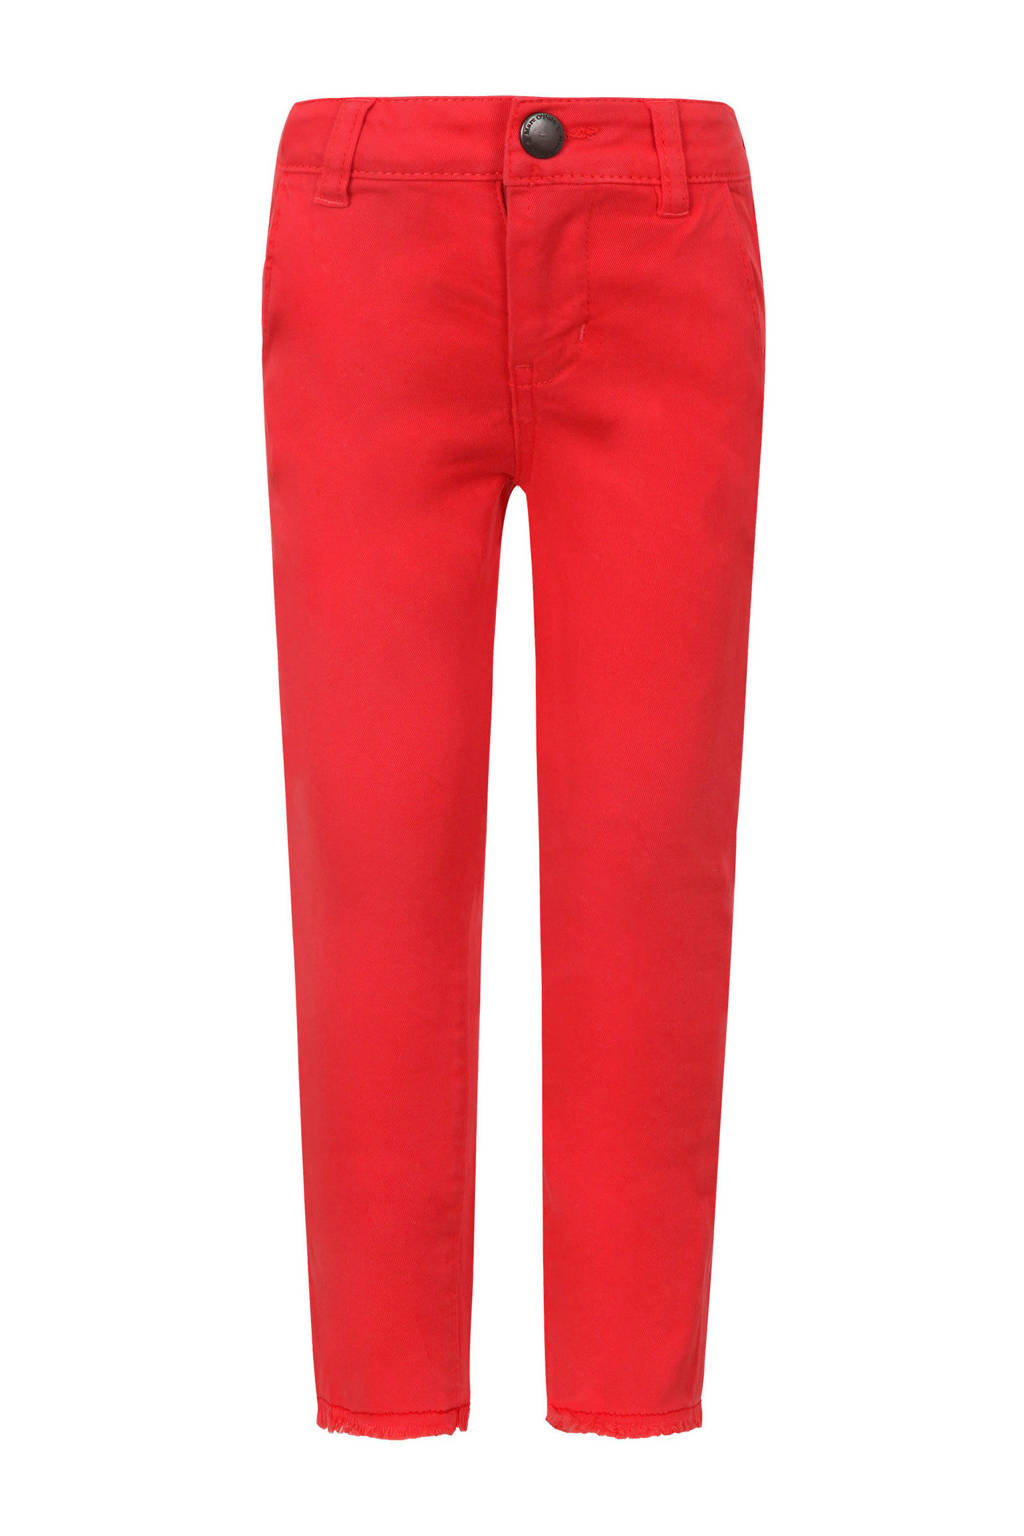 Marc O'Polo slim fit jeans rood, Rood